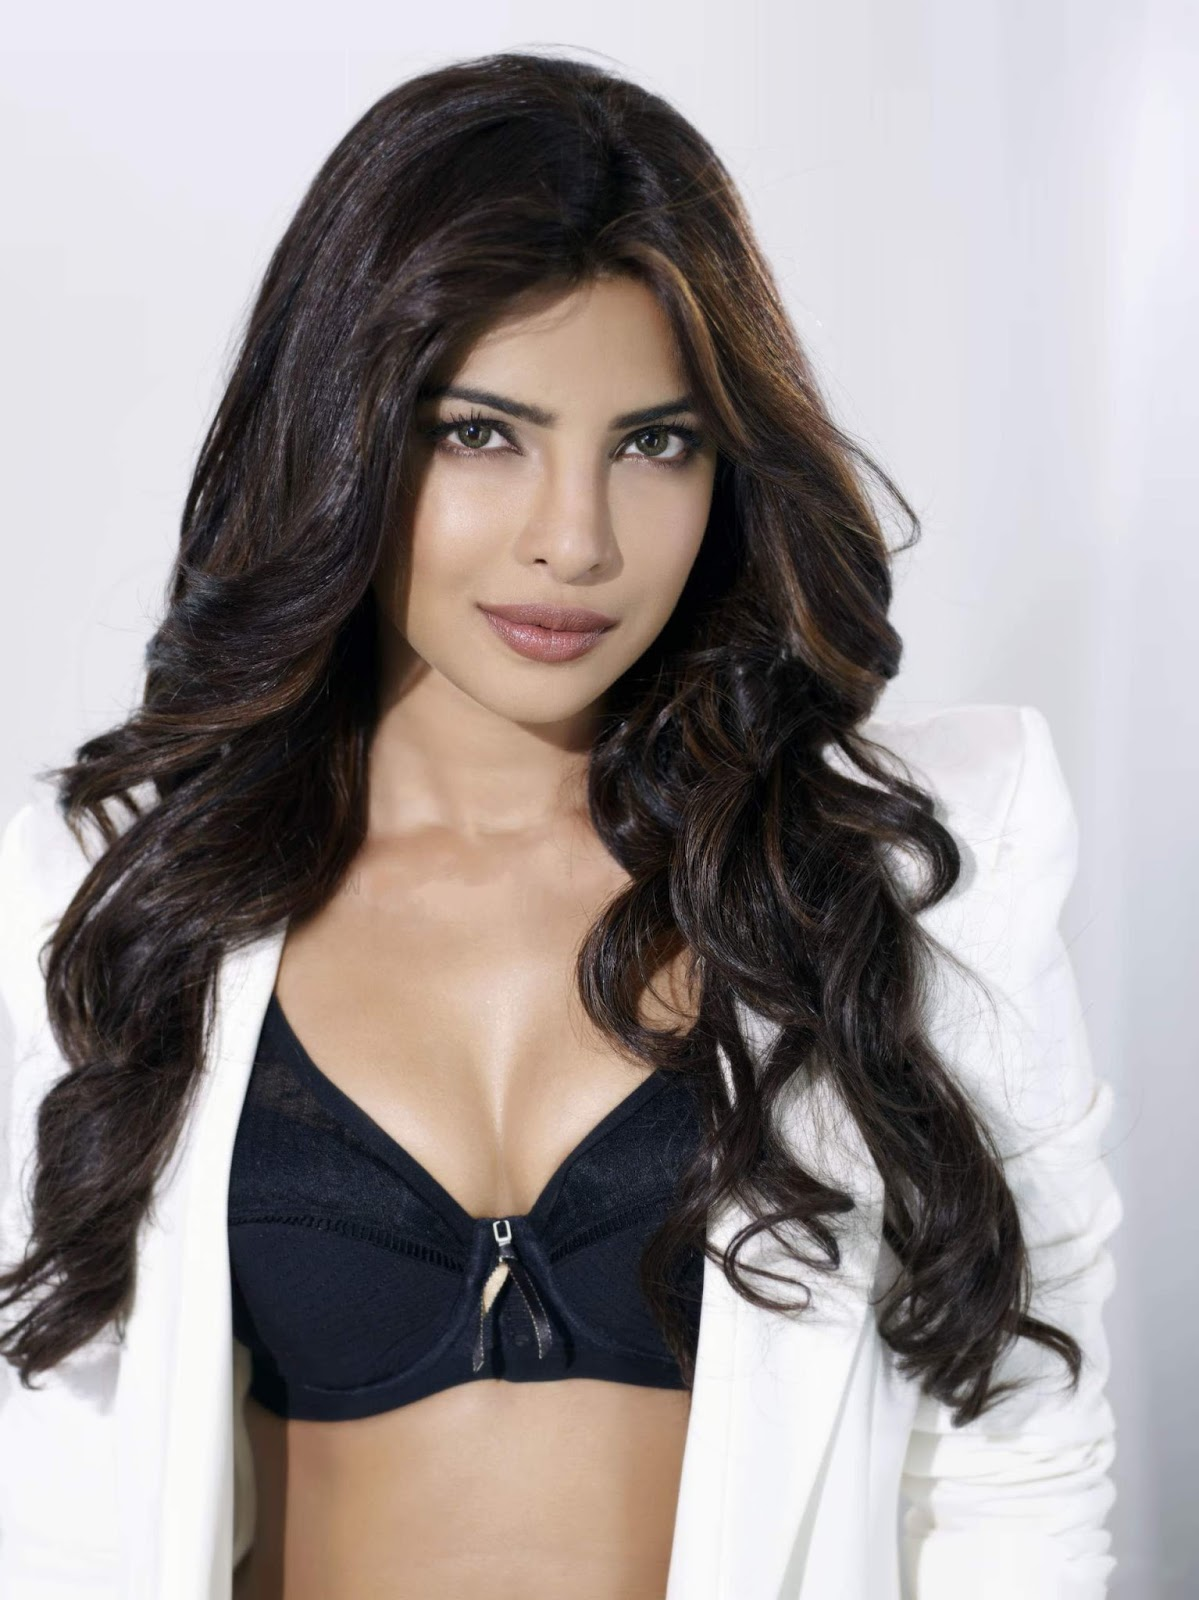 Priyanka Chopra Latest Hot Photos